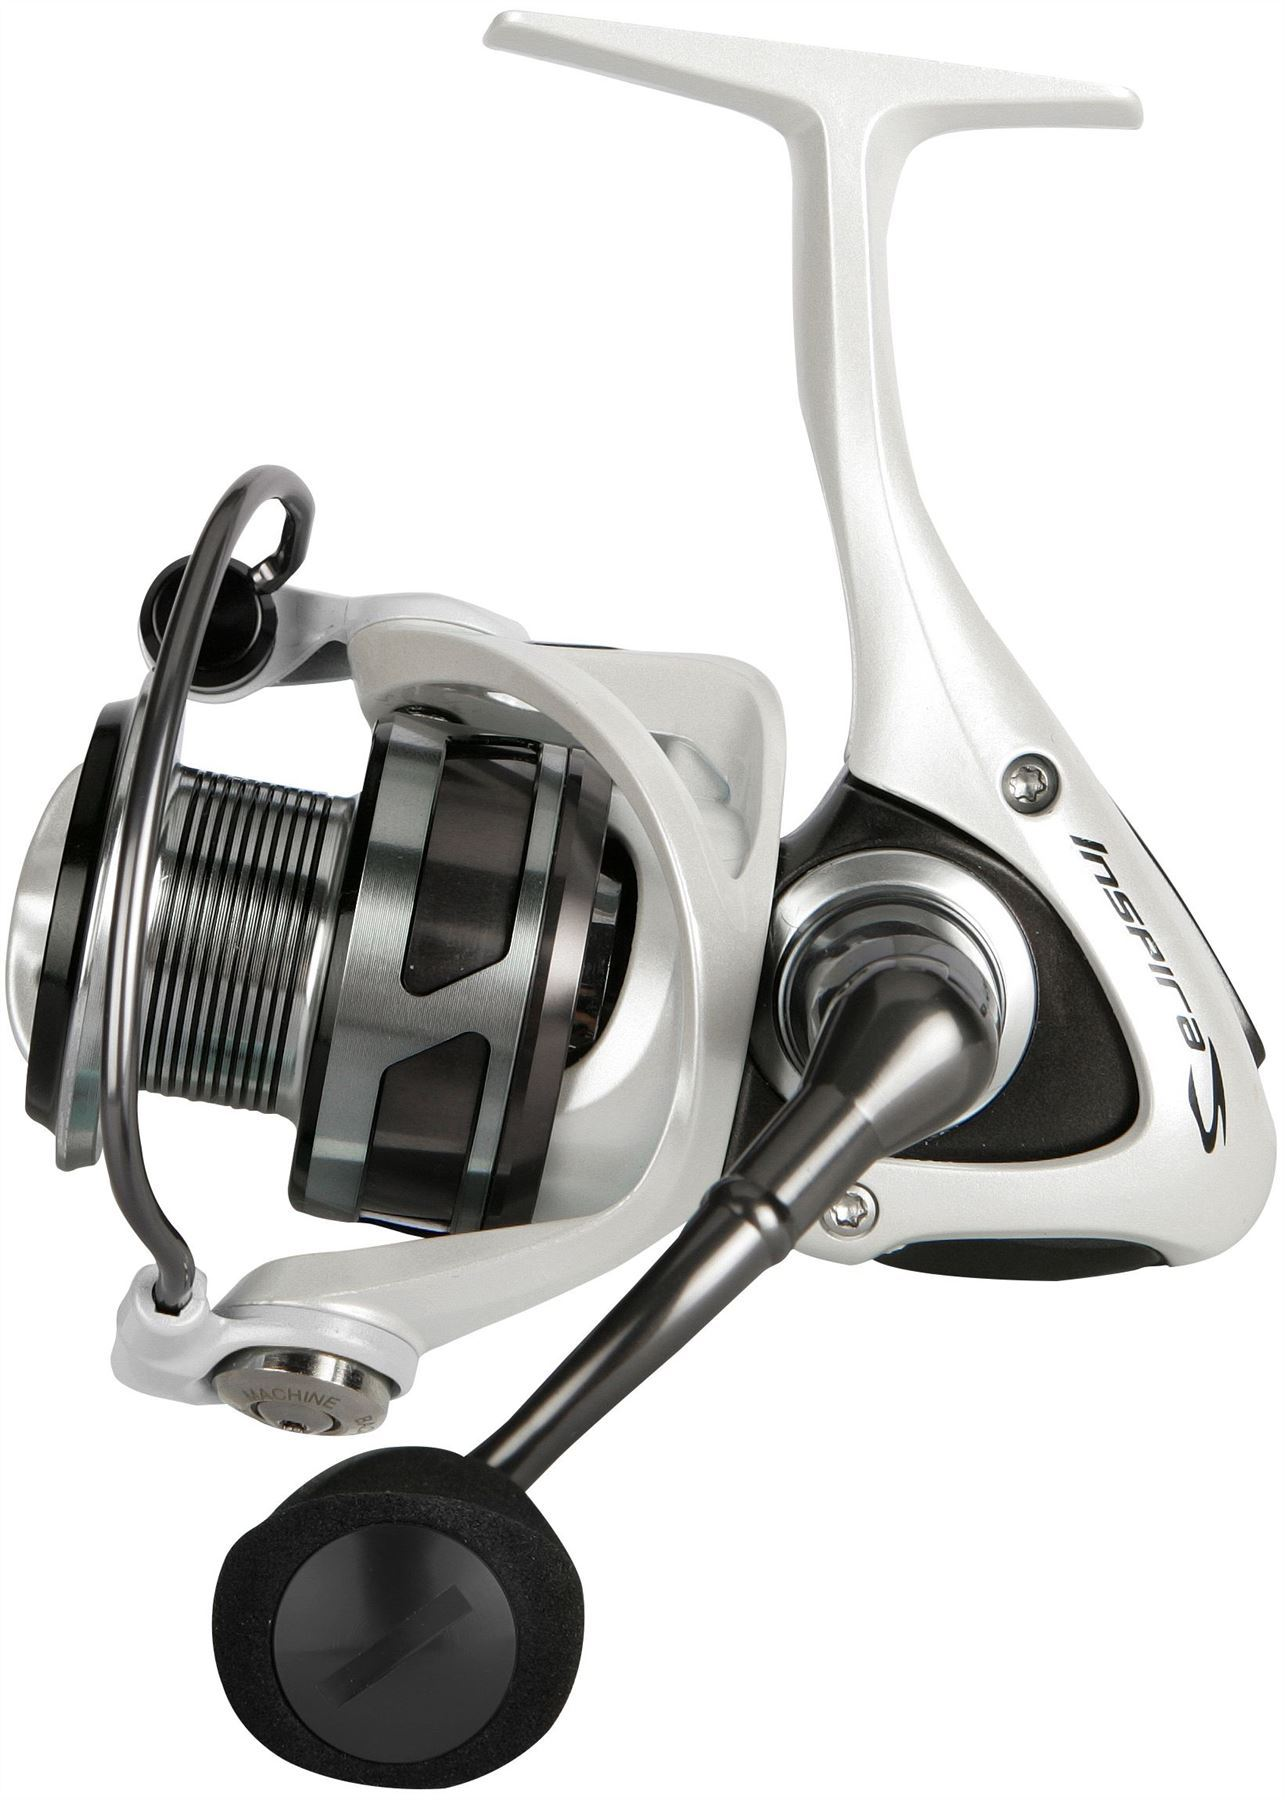 Okuma Inspira ISX-30 FD 8+1bb (inc.Spare spool) Spinning Reel - reid outdoors